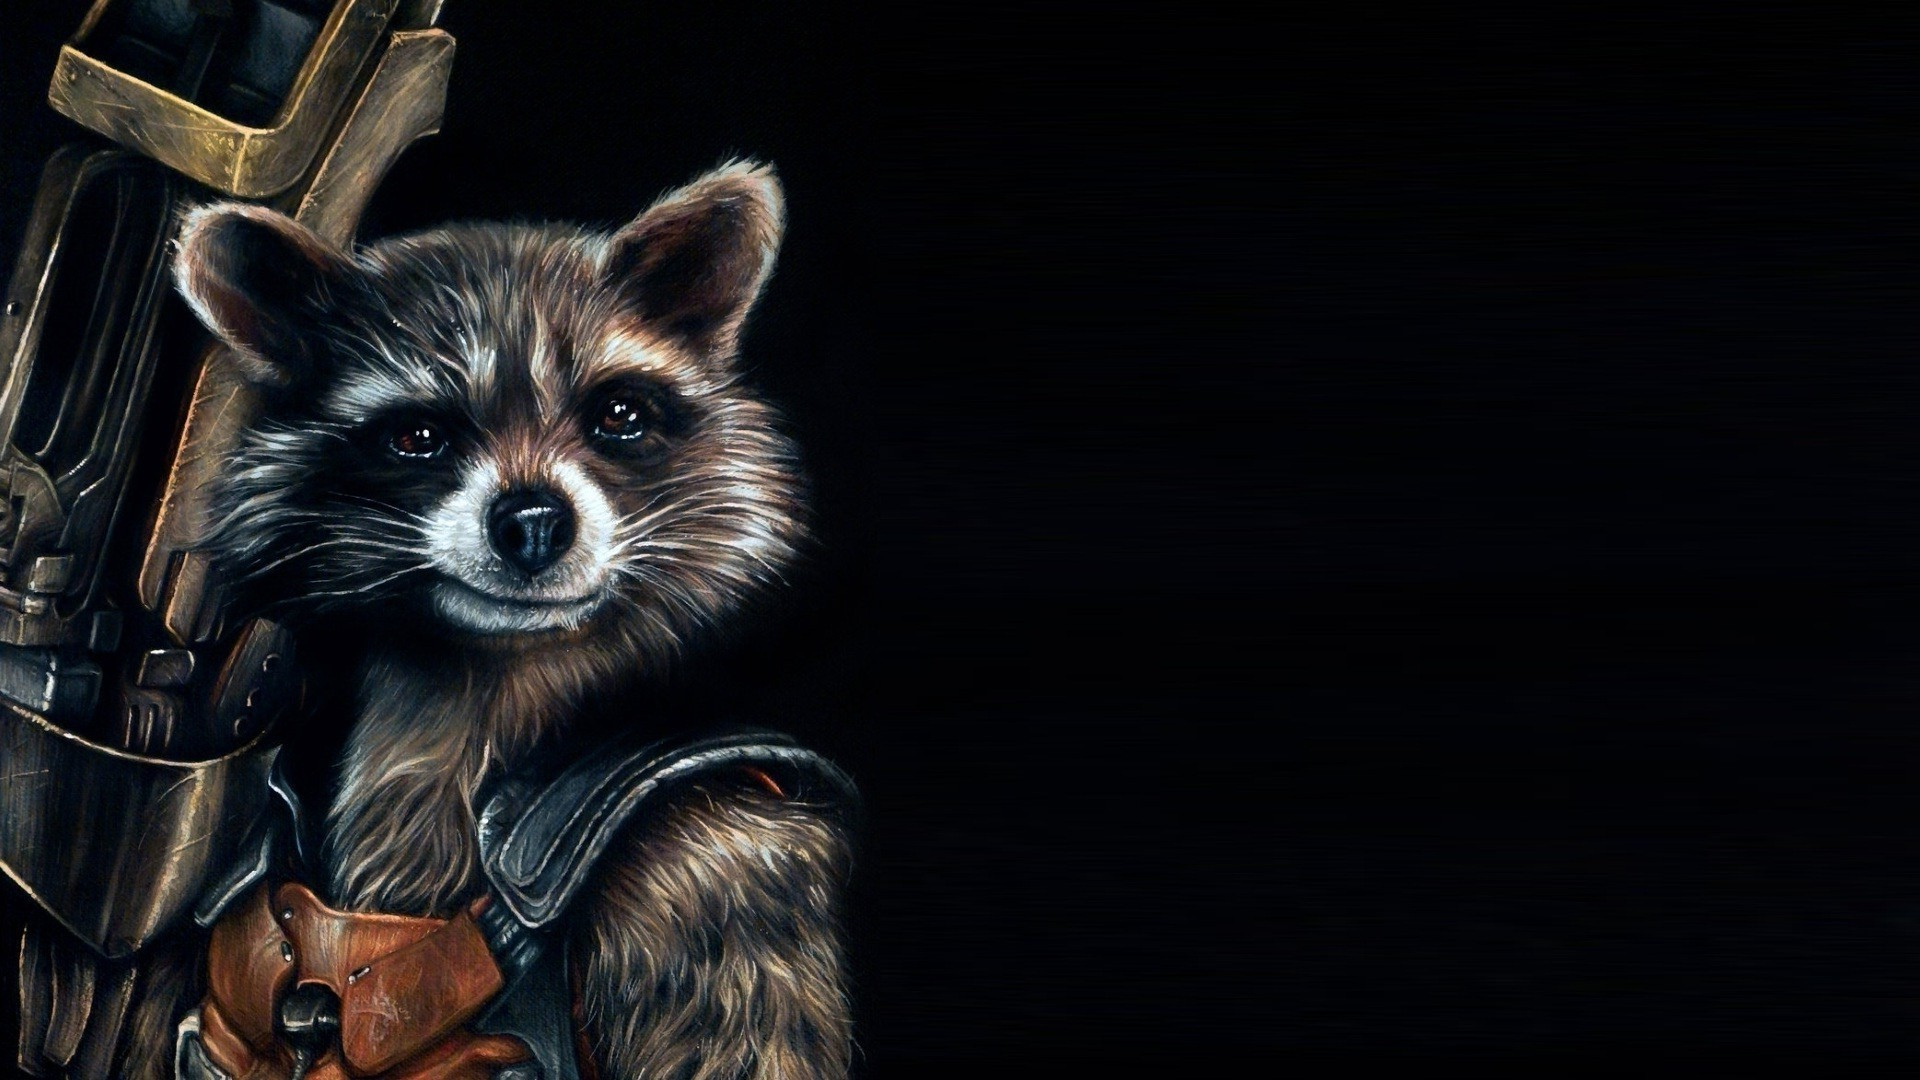 1920x1080 Guardians Of The Galaxy, Comics, Movies, Rocket Raccoon, Artwork,  Fictional, Black Background Wallpapers HD / Desktop and Mobile Backgrounds